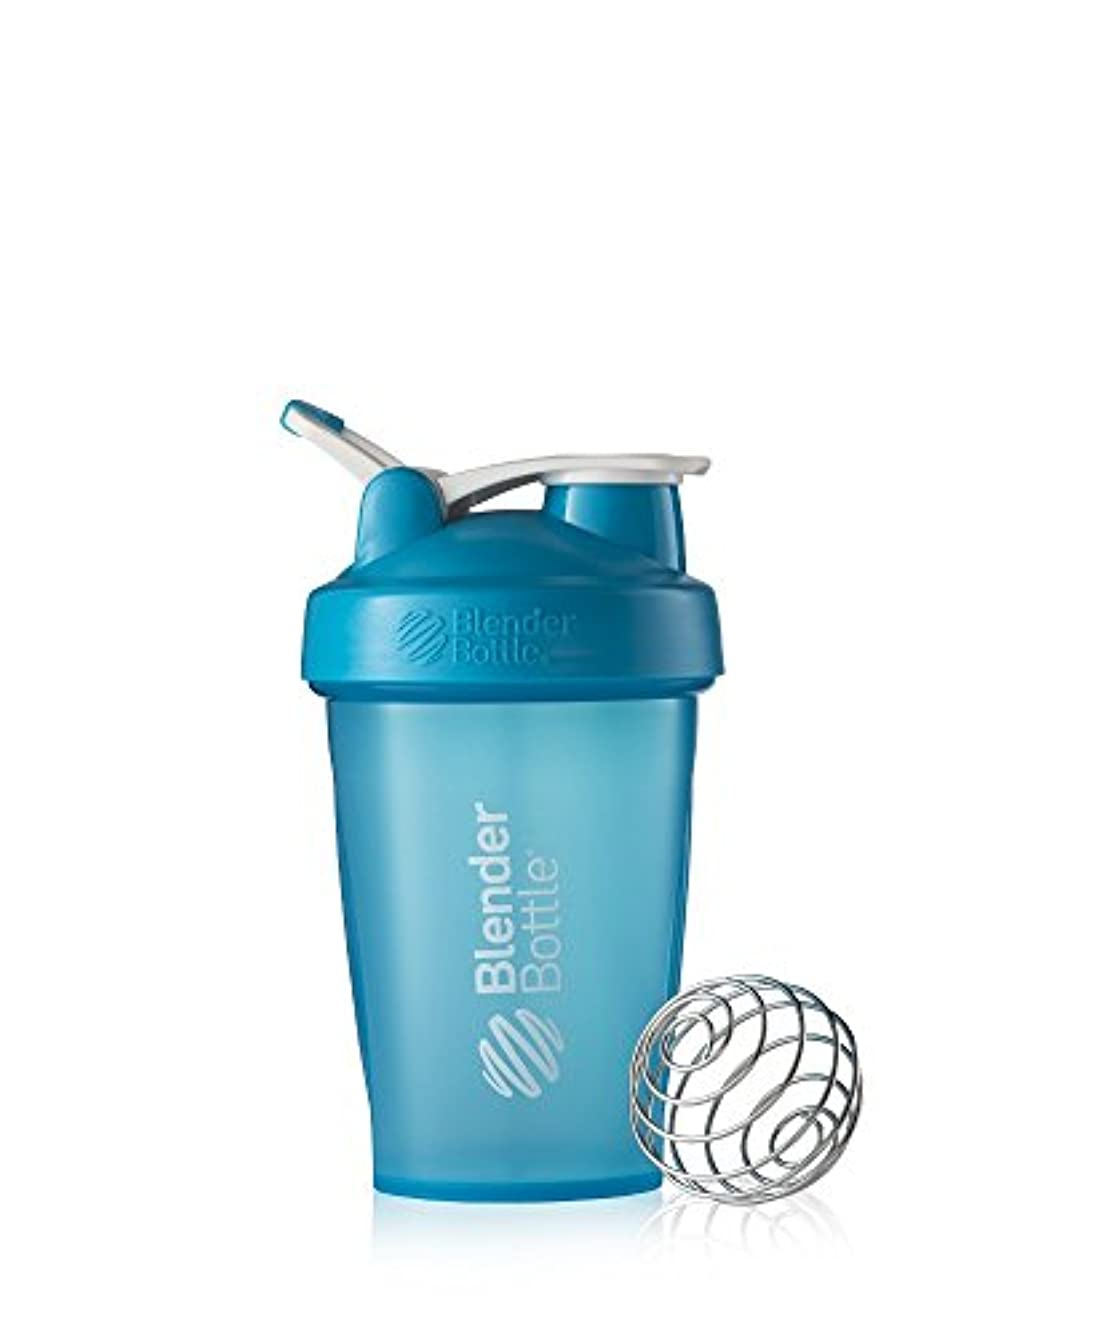 フェッチ着服テクトニックBlender Bottle Classic Loop Top Shaker Bottle, 20-Ounce, Aqua/Aqua